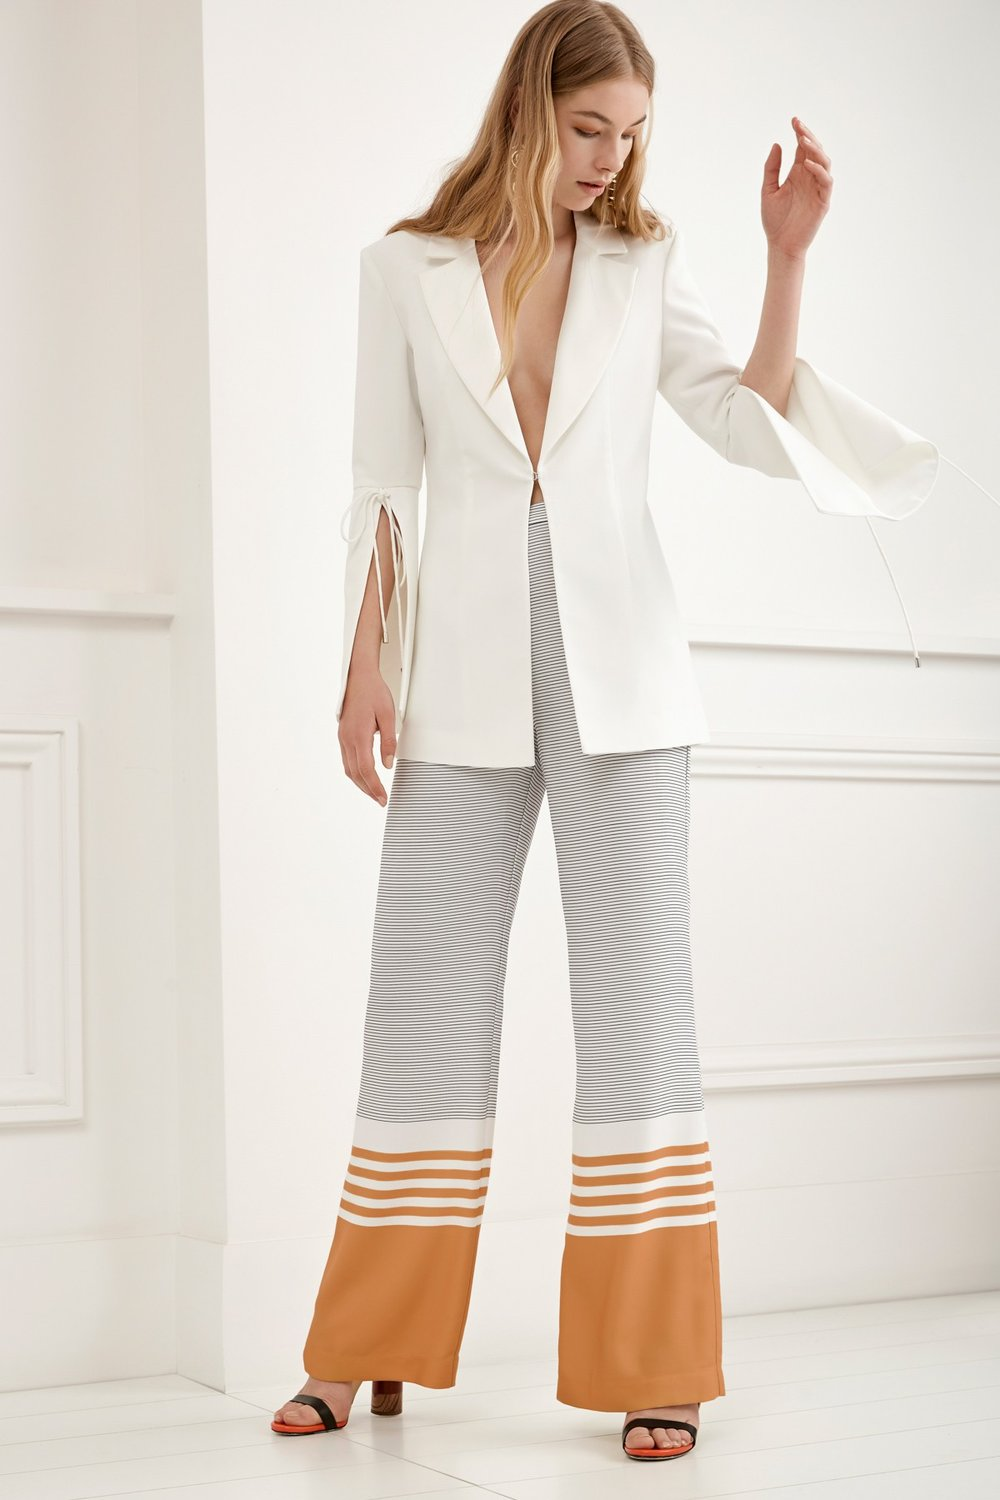 Shop C/MEO Eternity Blazer + Always Waiting Pant.